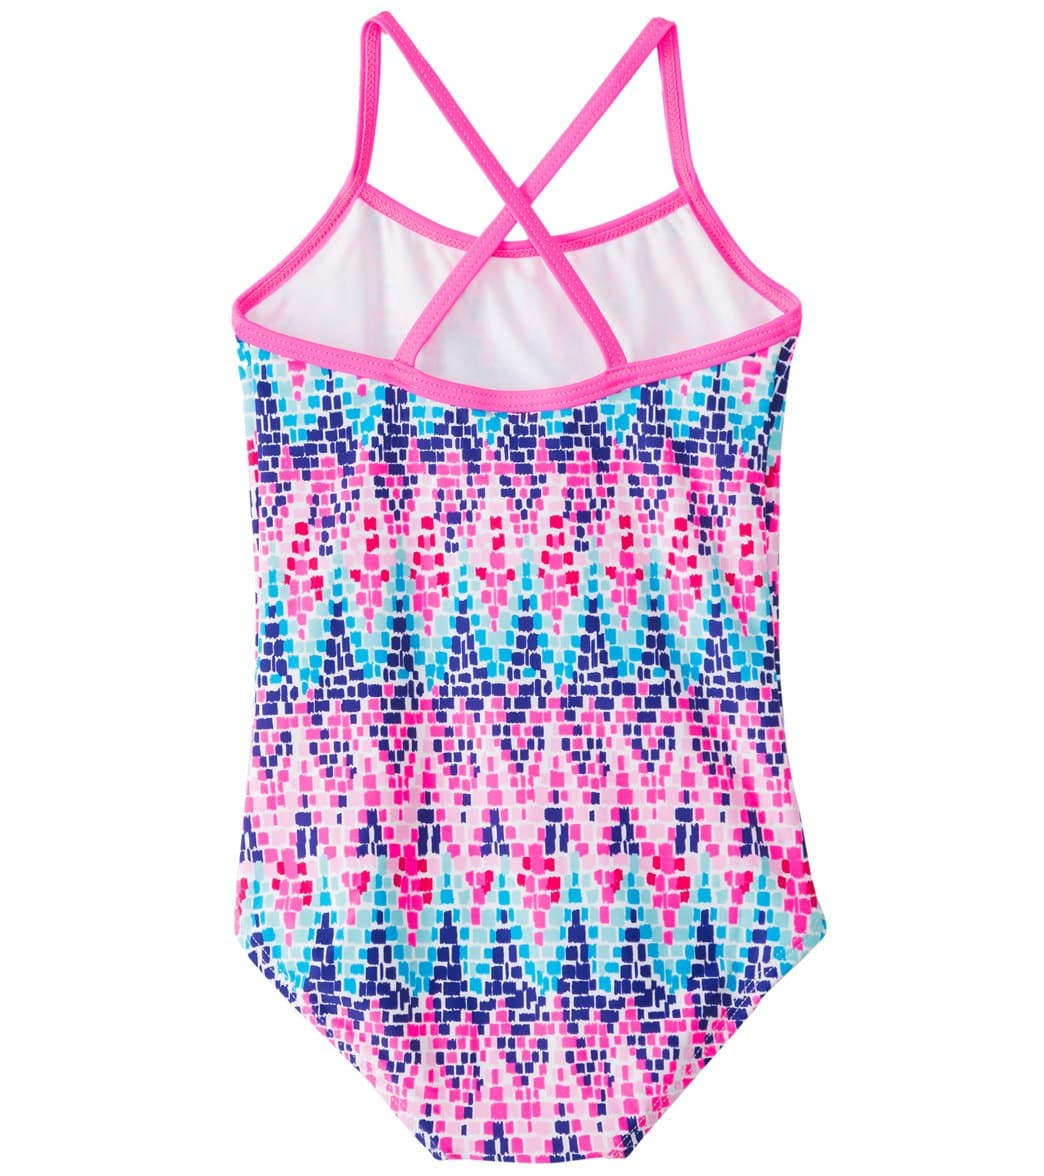 2f02544b99 Kanu Surf Girls' Candy One Piece Swimsuit (2T-4T) at SwimOutlet.com